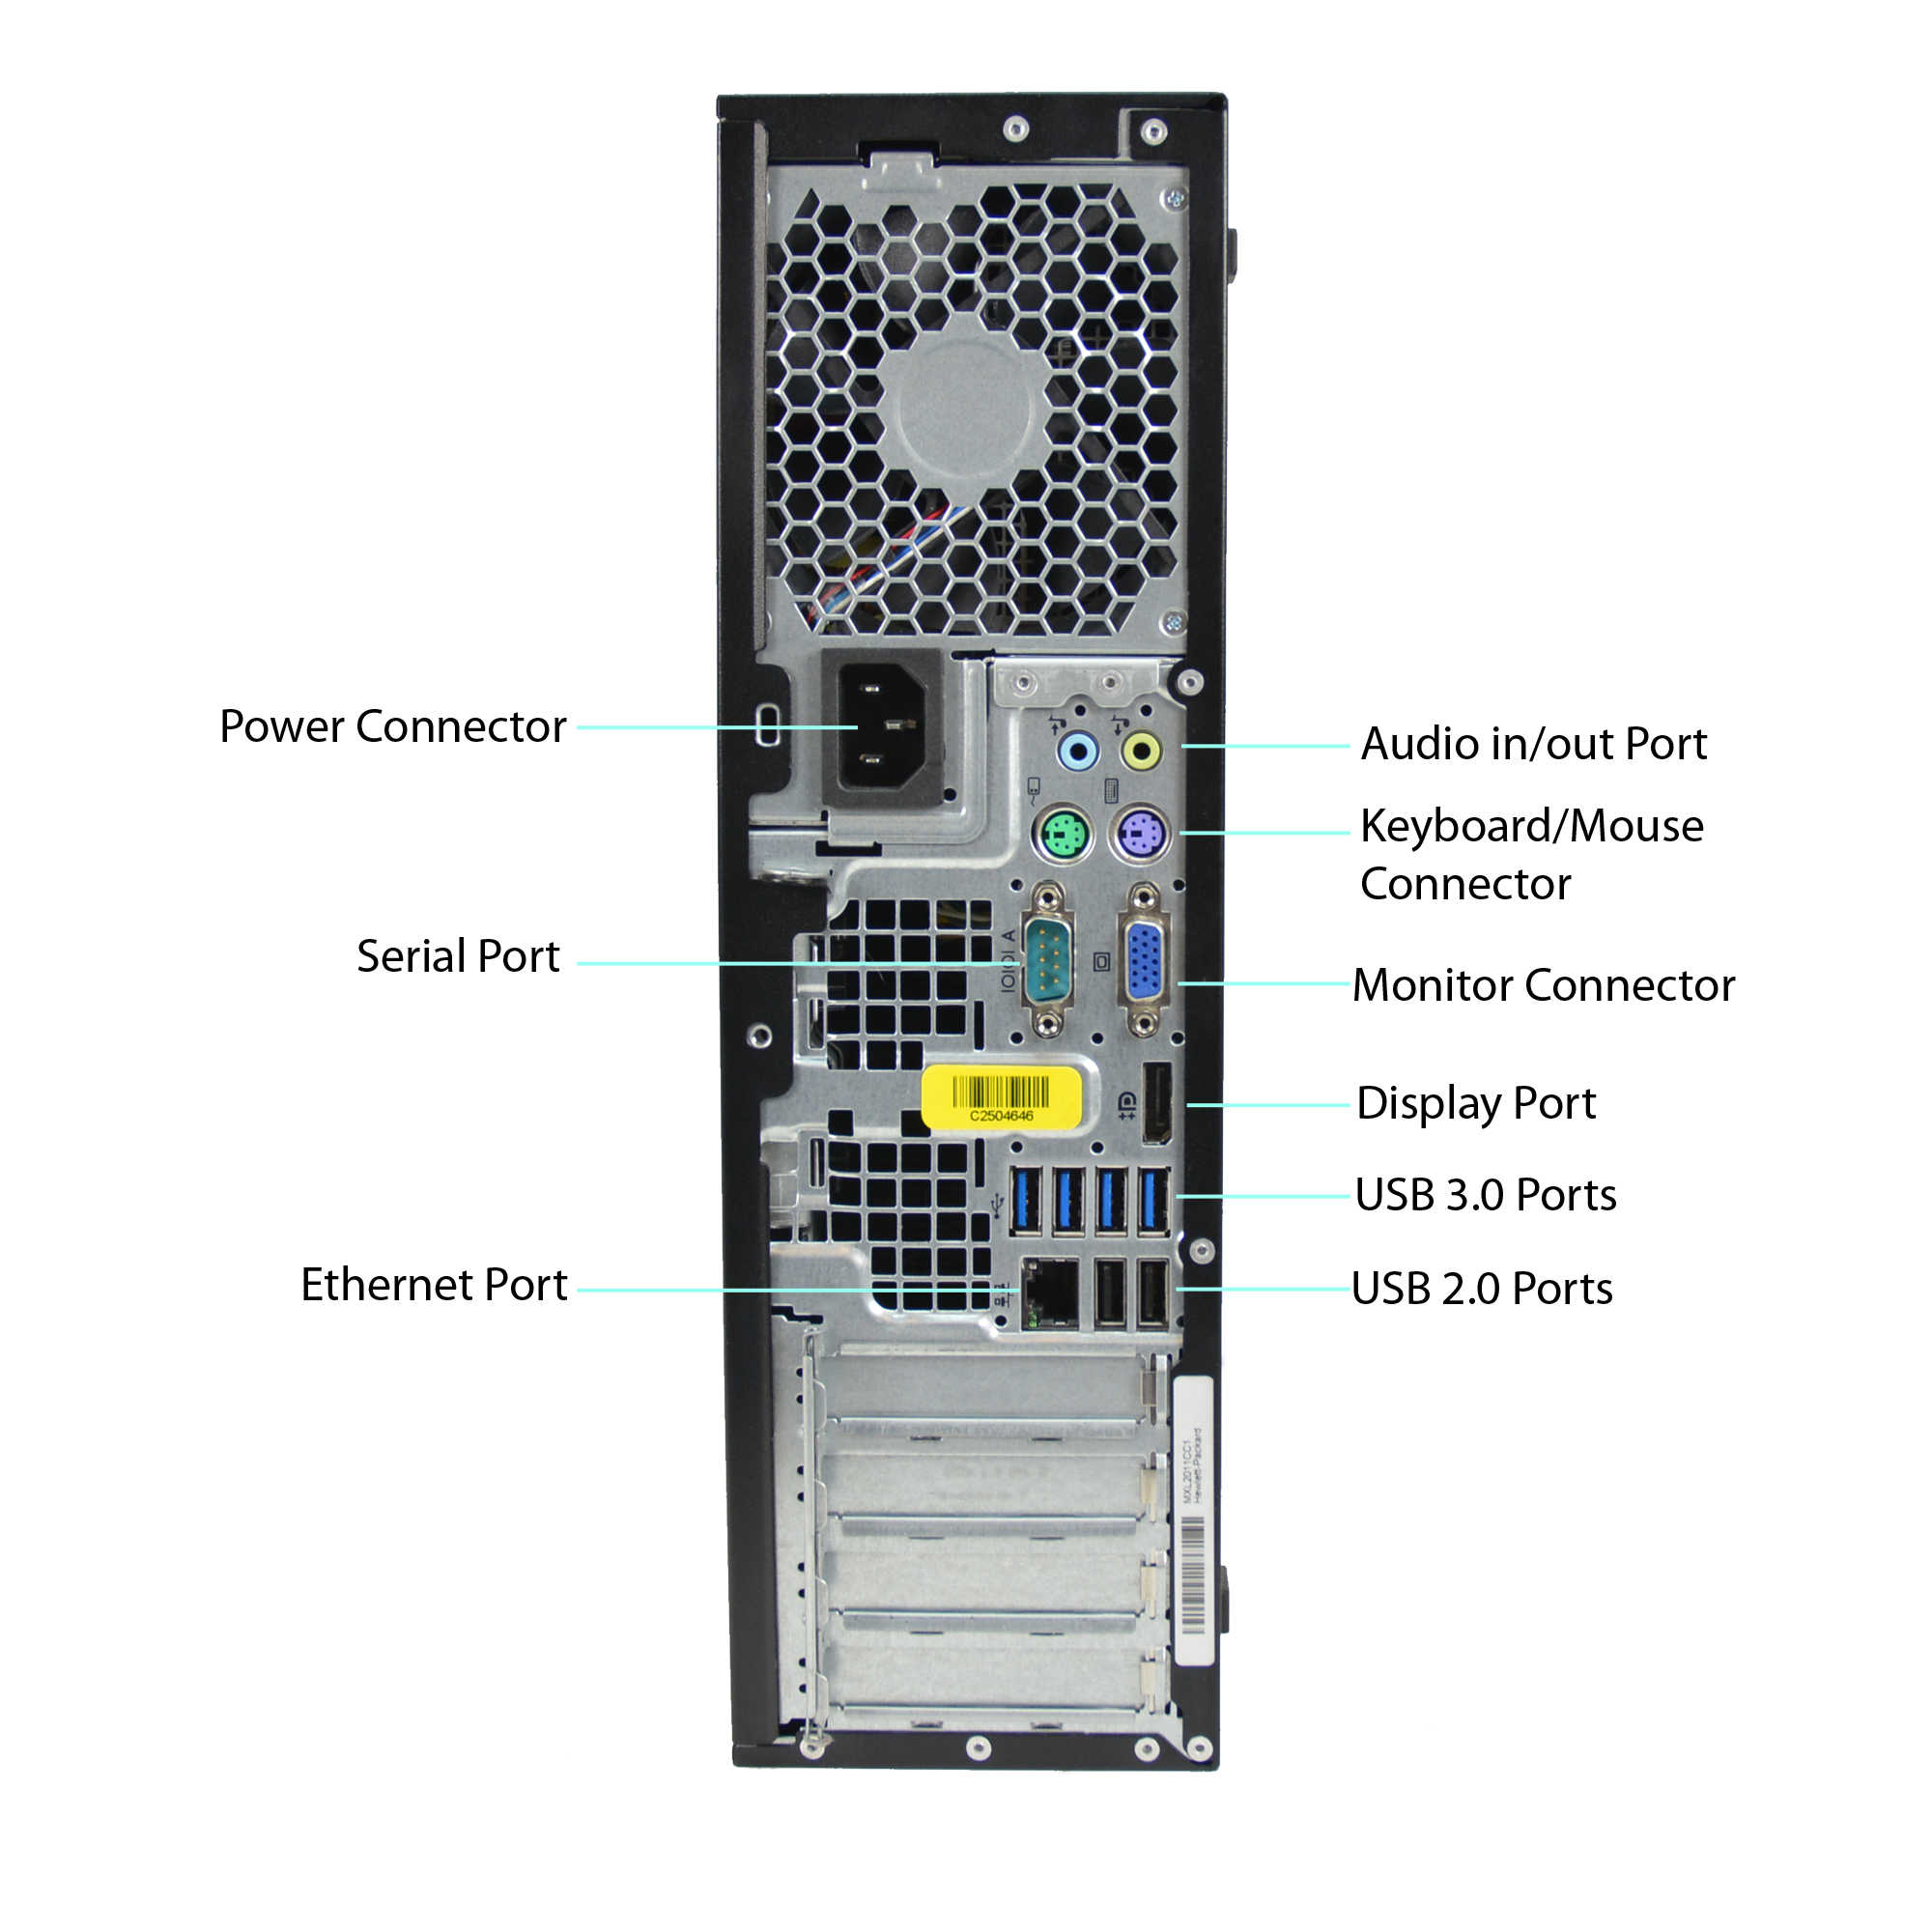 Refurbished HP Compaq 6300-SFF WA2-0323 Desktop PC with Intel Core i5-3470 Processor, 8GB Memory, 2TB Hard Drive and Windows 10 Pro (Monitor Not Included)